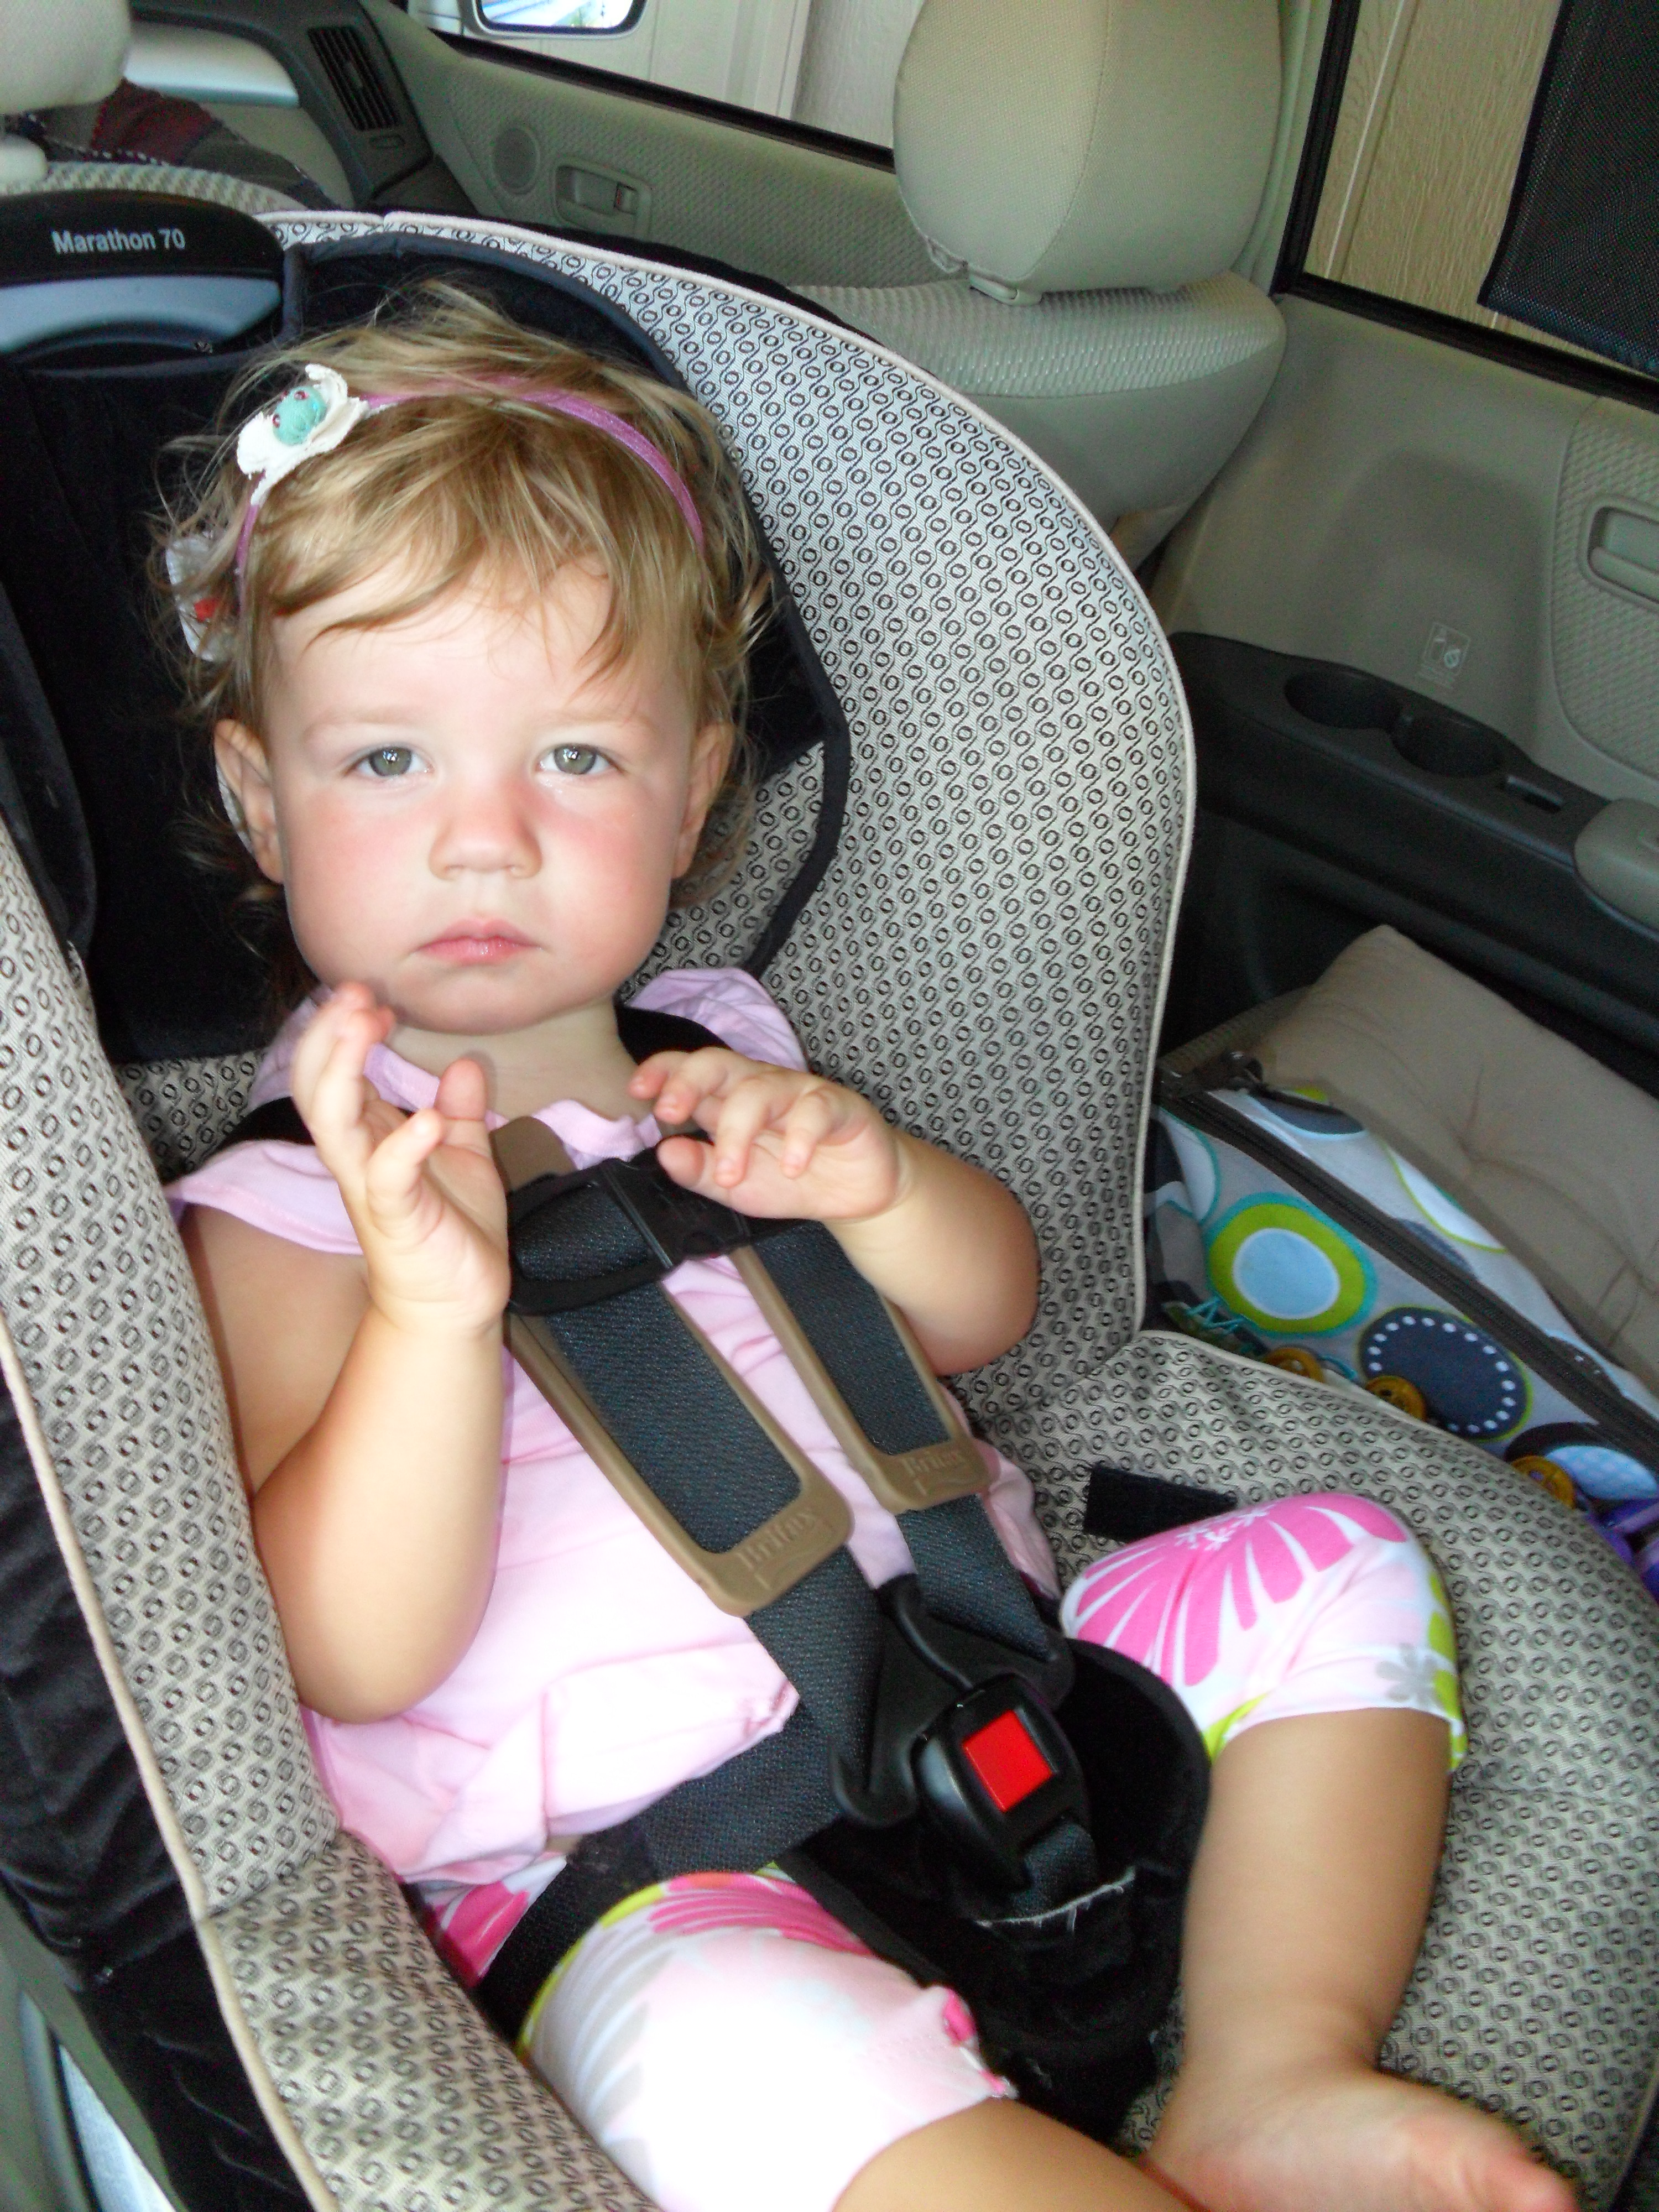 How To Unhook Britax Car Seat